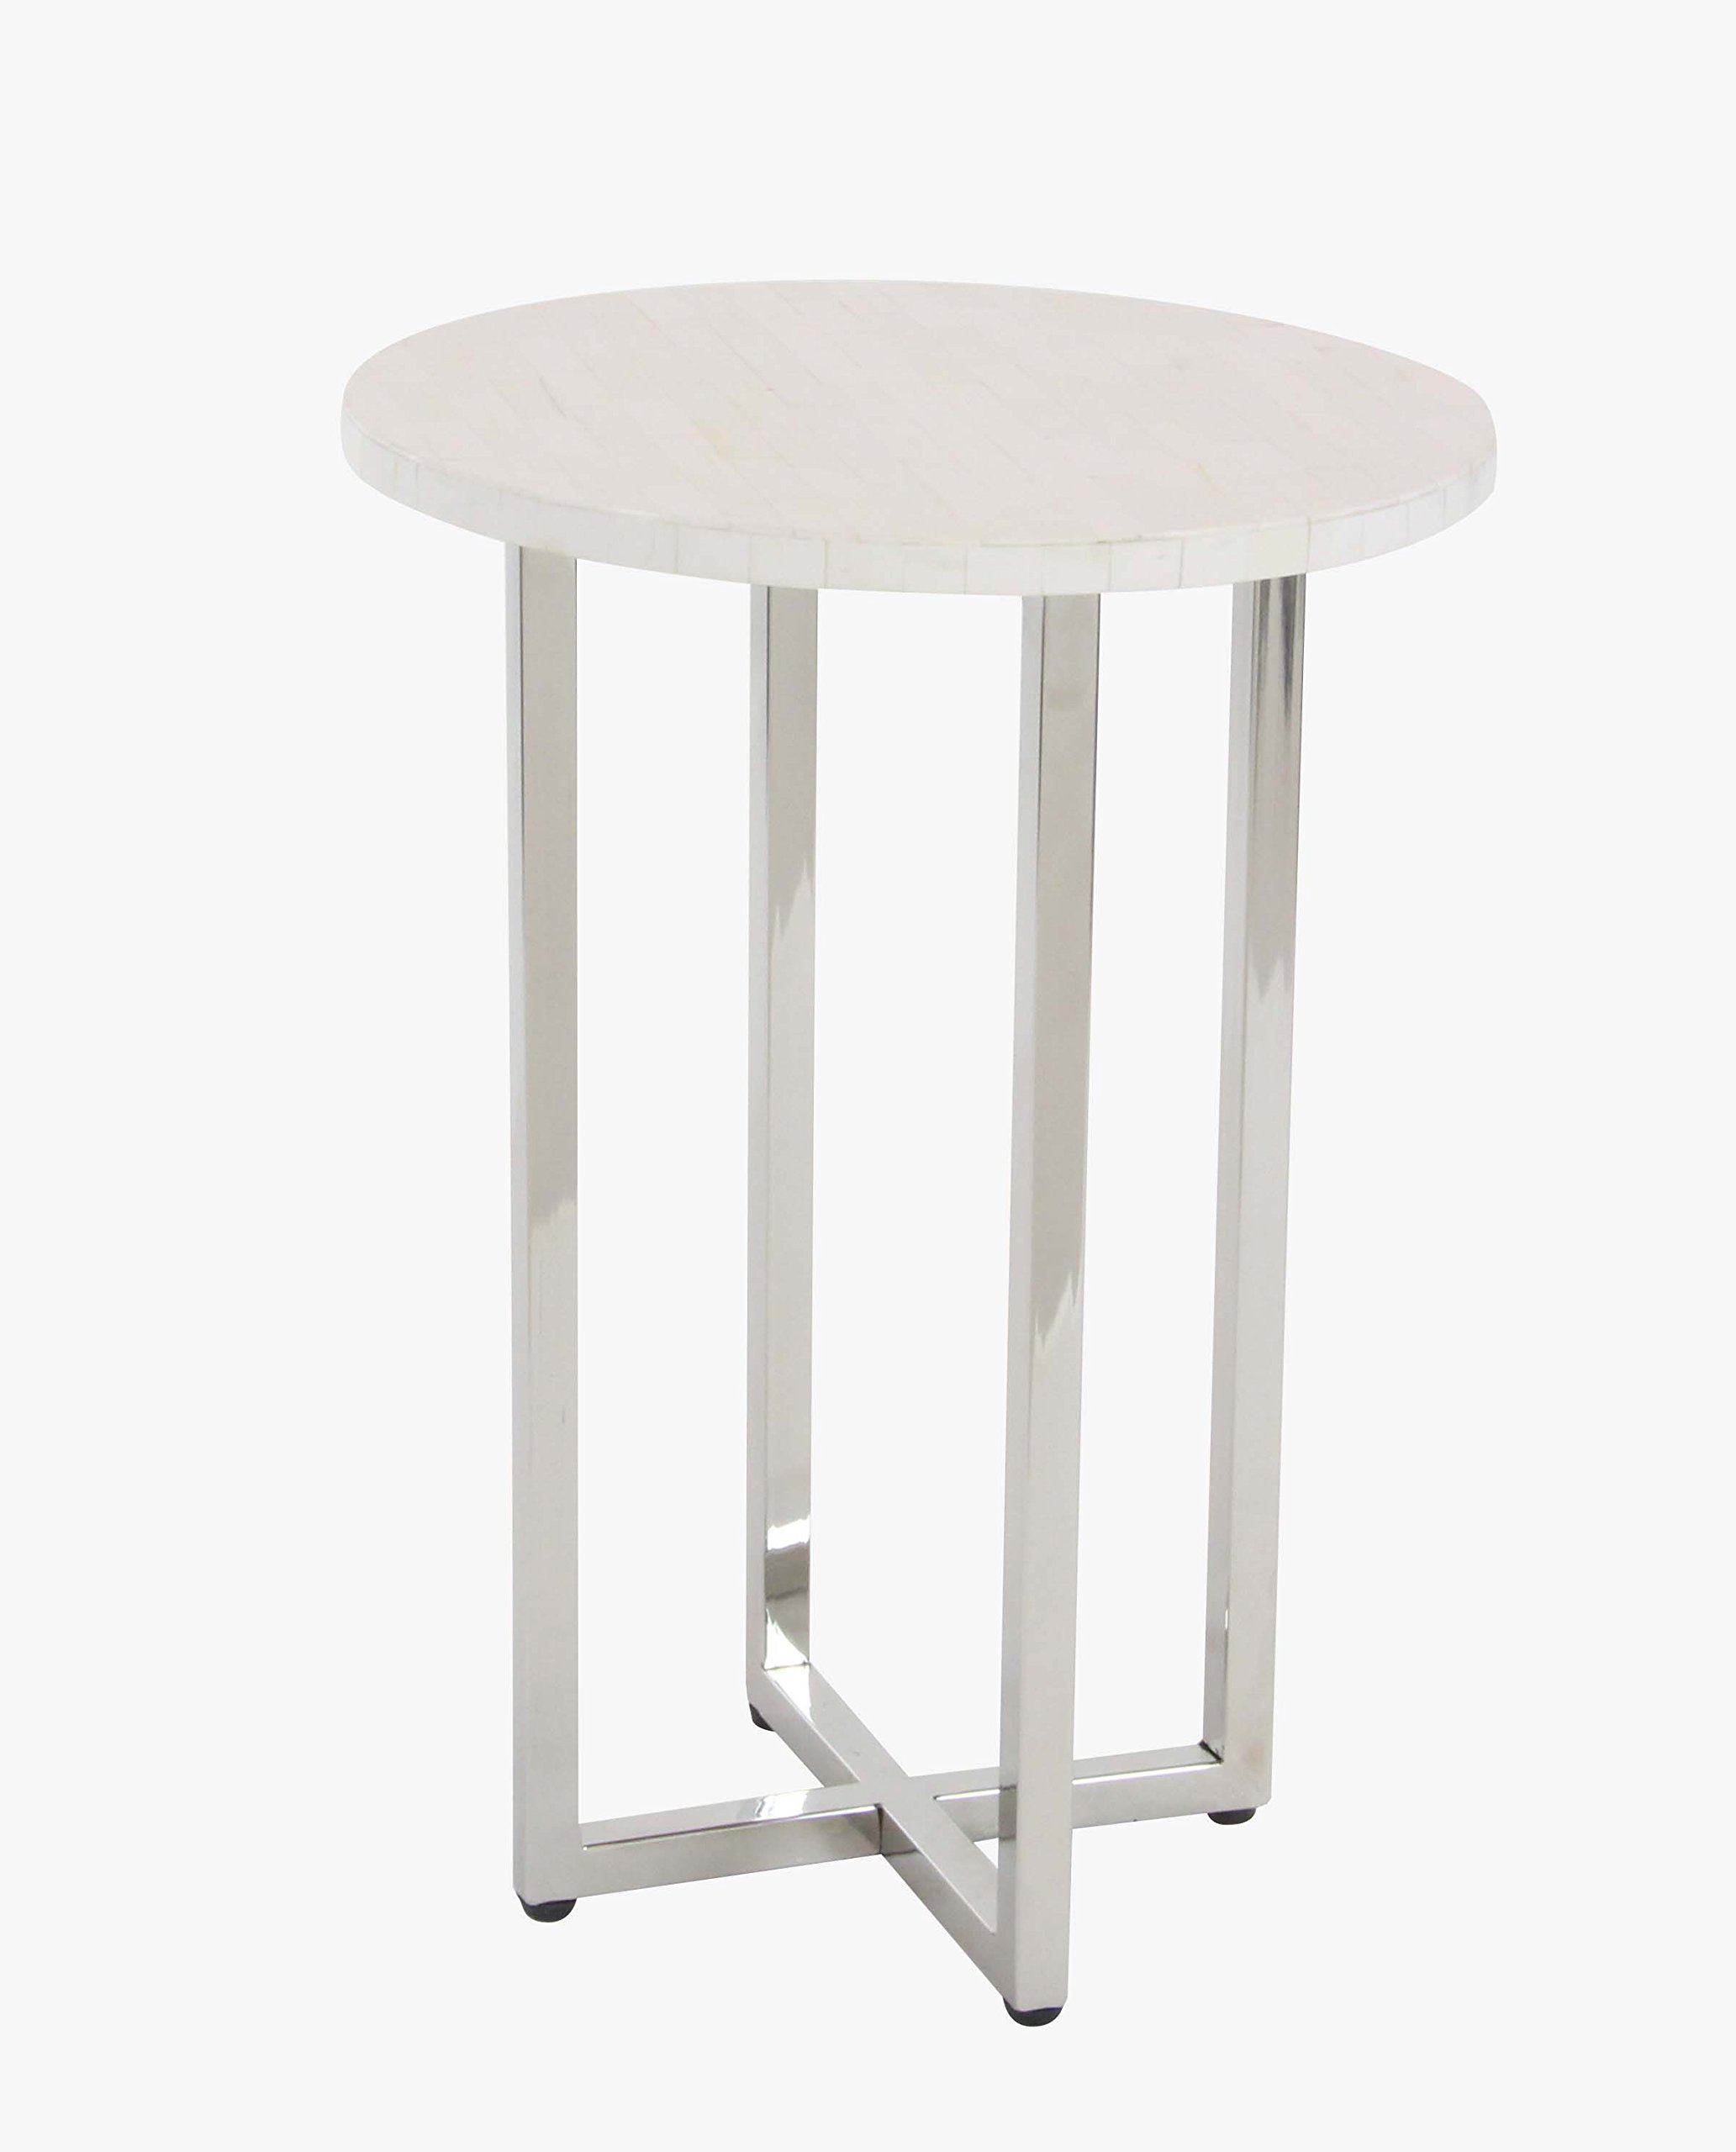 silver accent table find line round get quotations deco white cherry side tables for living room house interior design ideas pier one big chair west elm wall shelf shades light